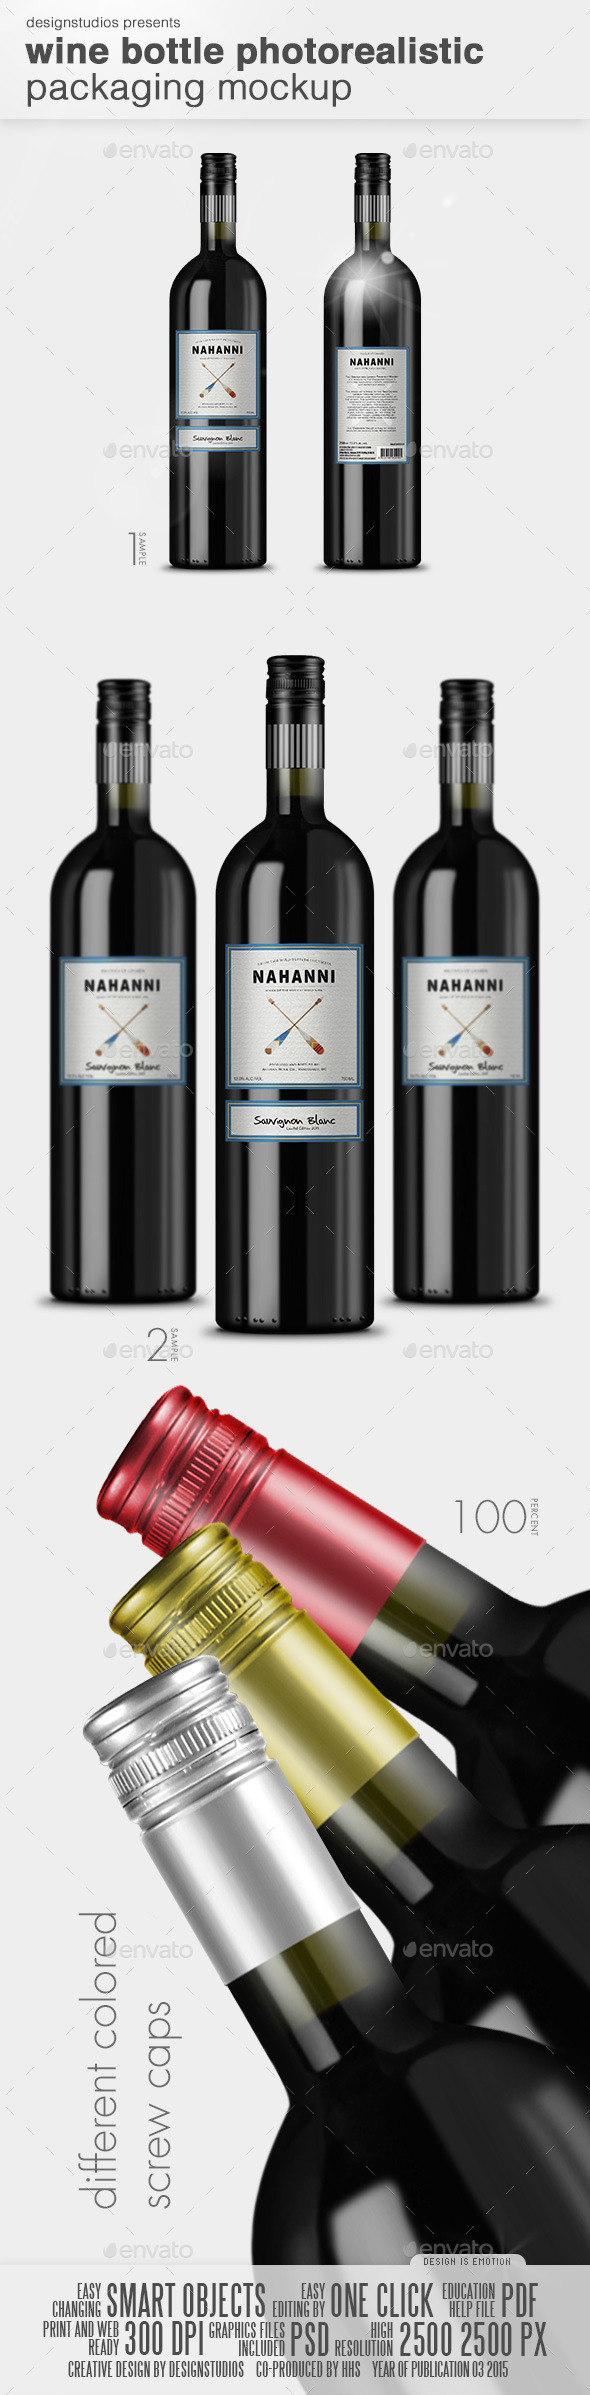 GraphicRiver Wine Bottle Photorealistic Packaging Mock-Up 10811692